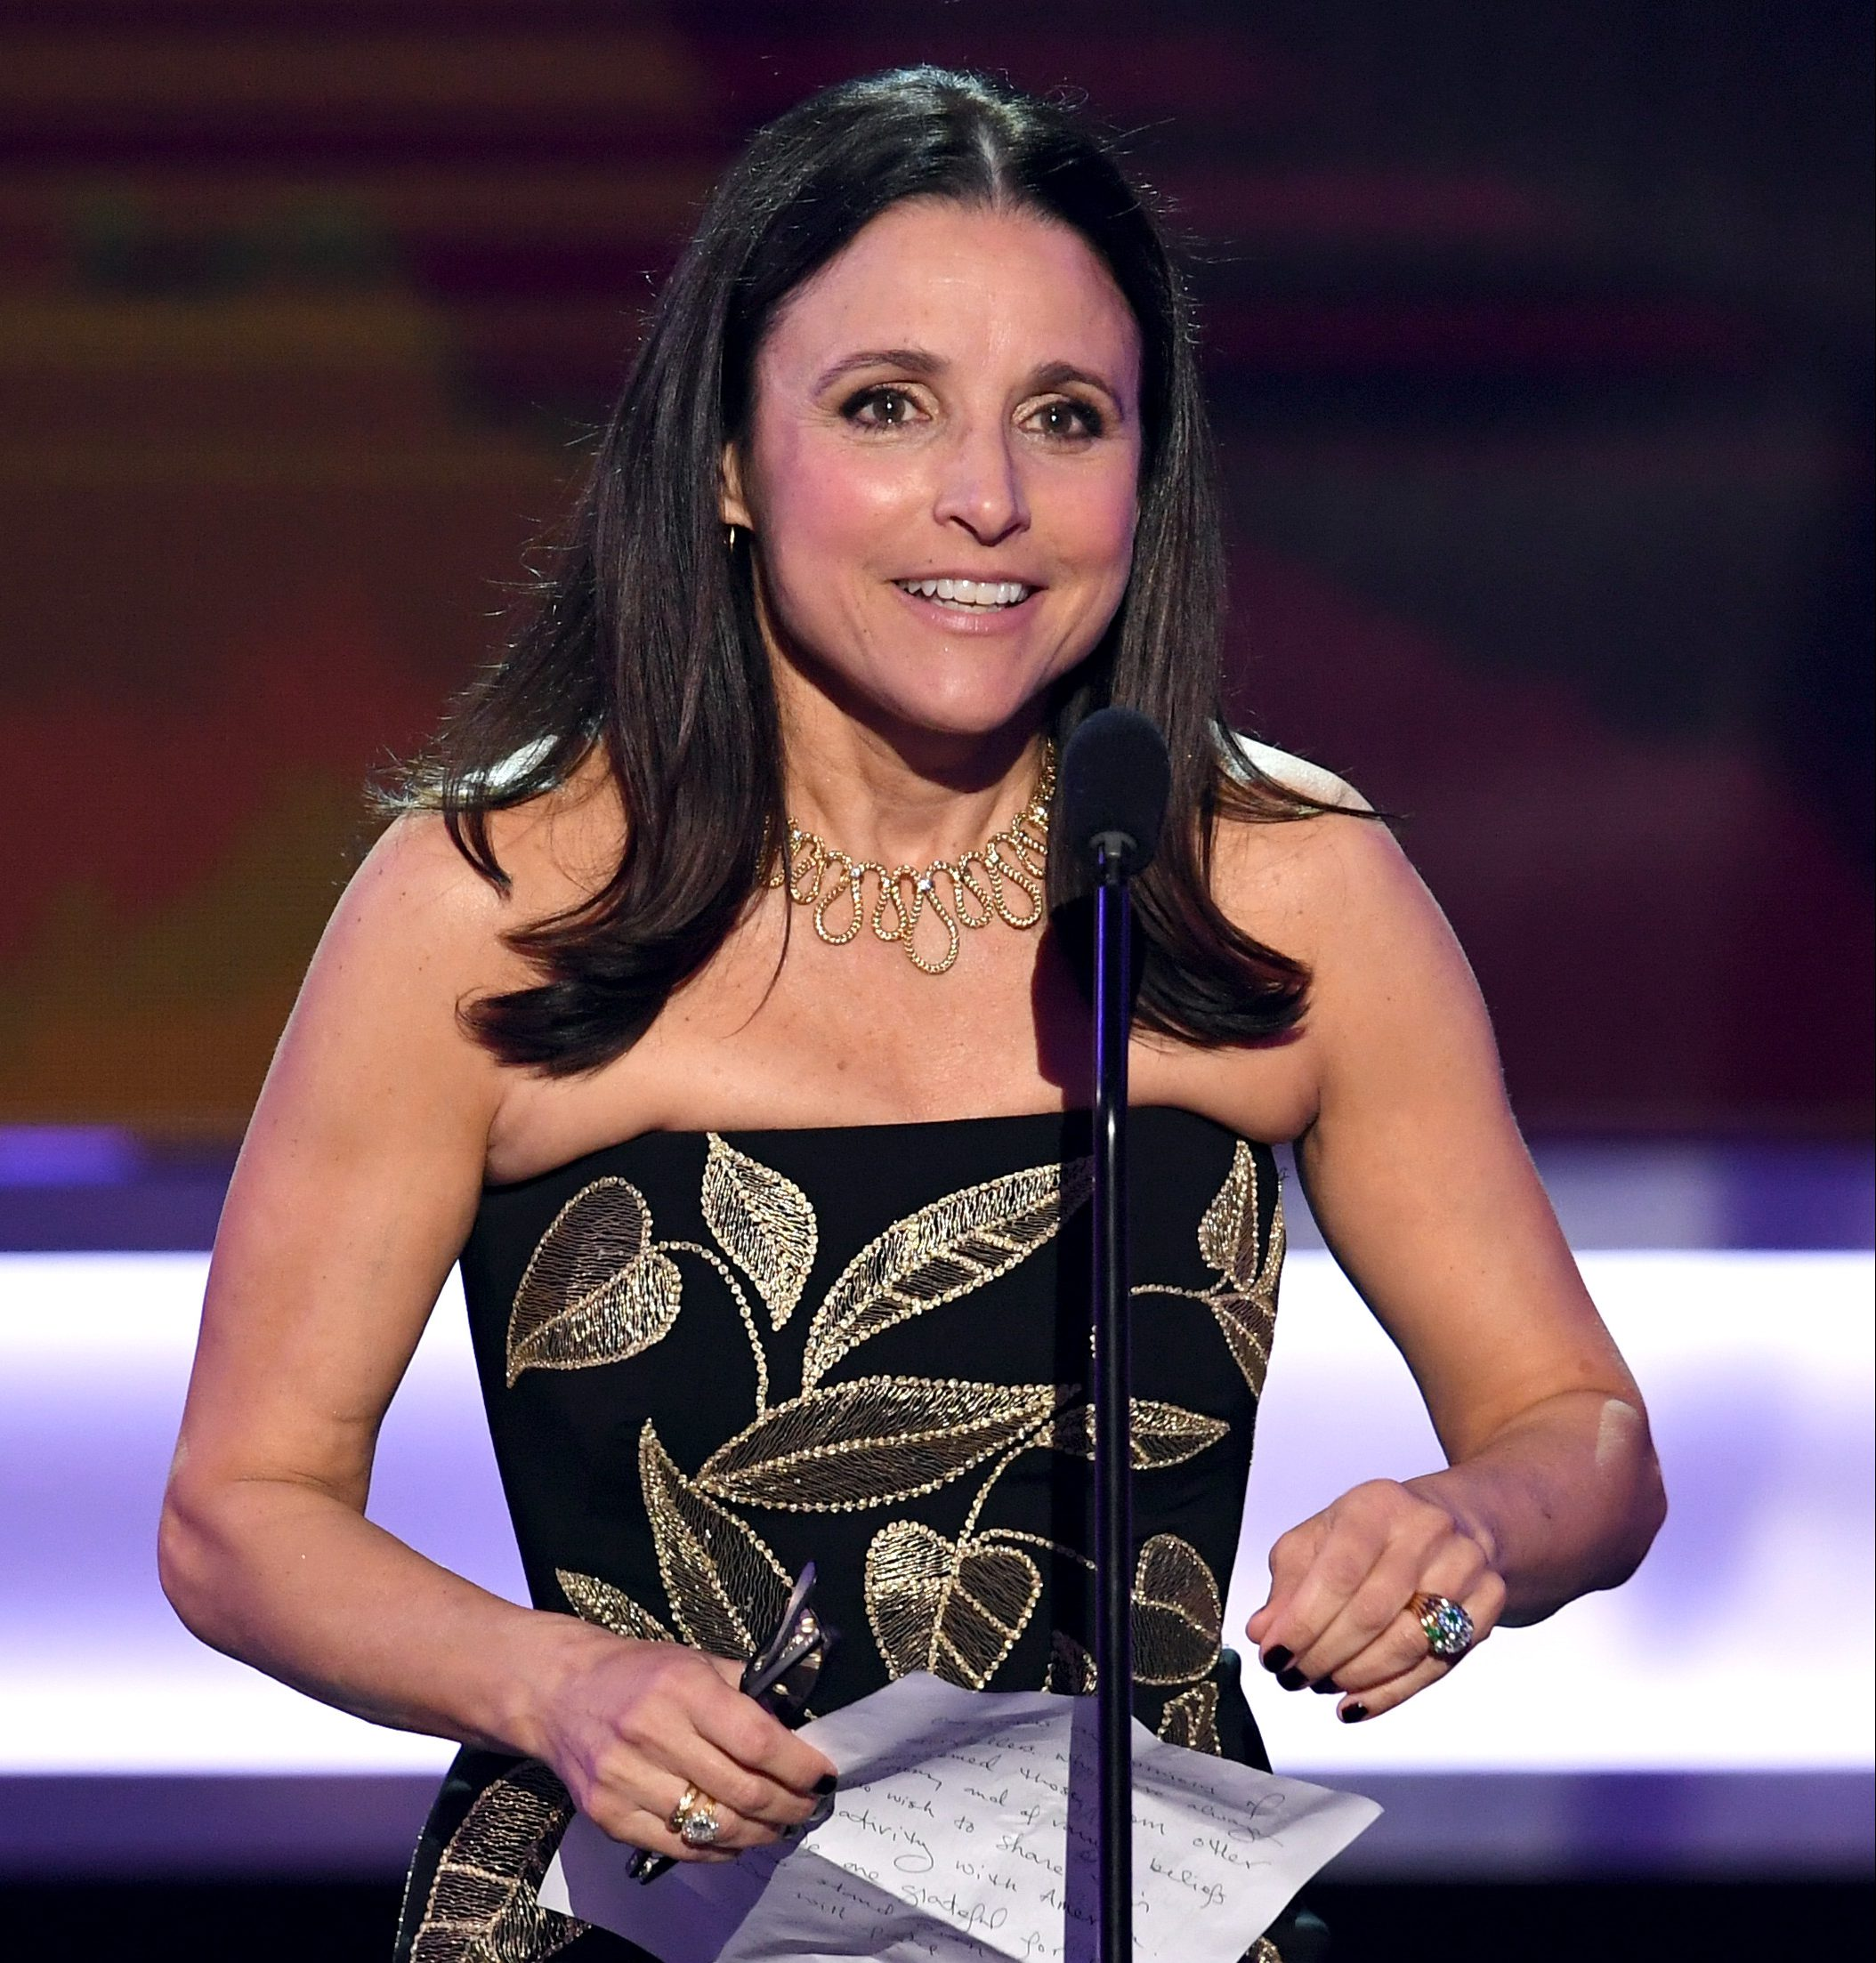 Julia Louis-Dreyfus accepts Outstanding Performance by a Female Actor in a Comedy Series for 'Veep' onstage during The 23rd Annual Screen Actors Guild Awards at The Shrine Auditorium on January 29, 2017 in Los Angeles, California.  (Getty)